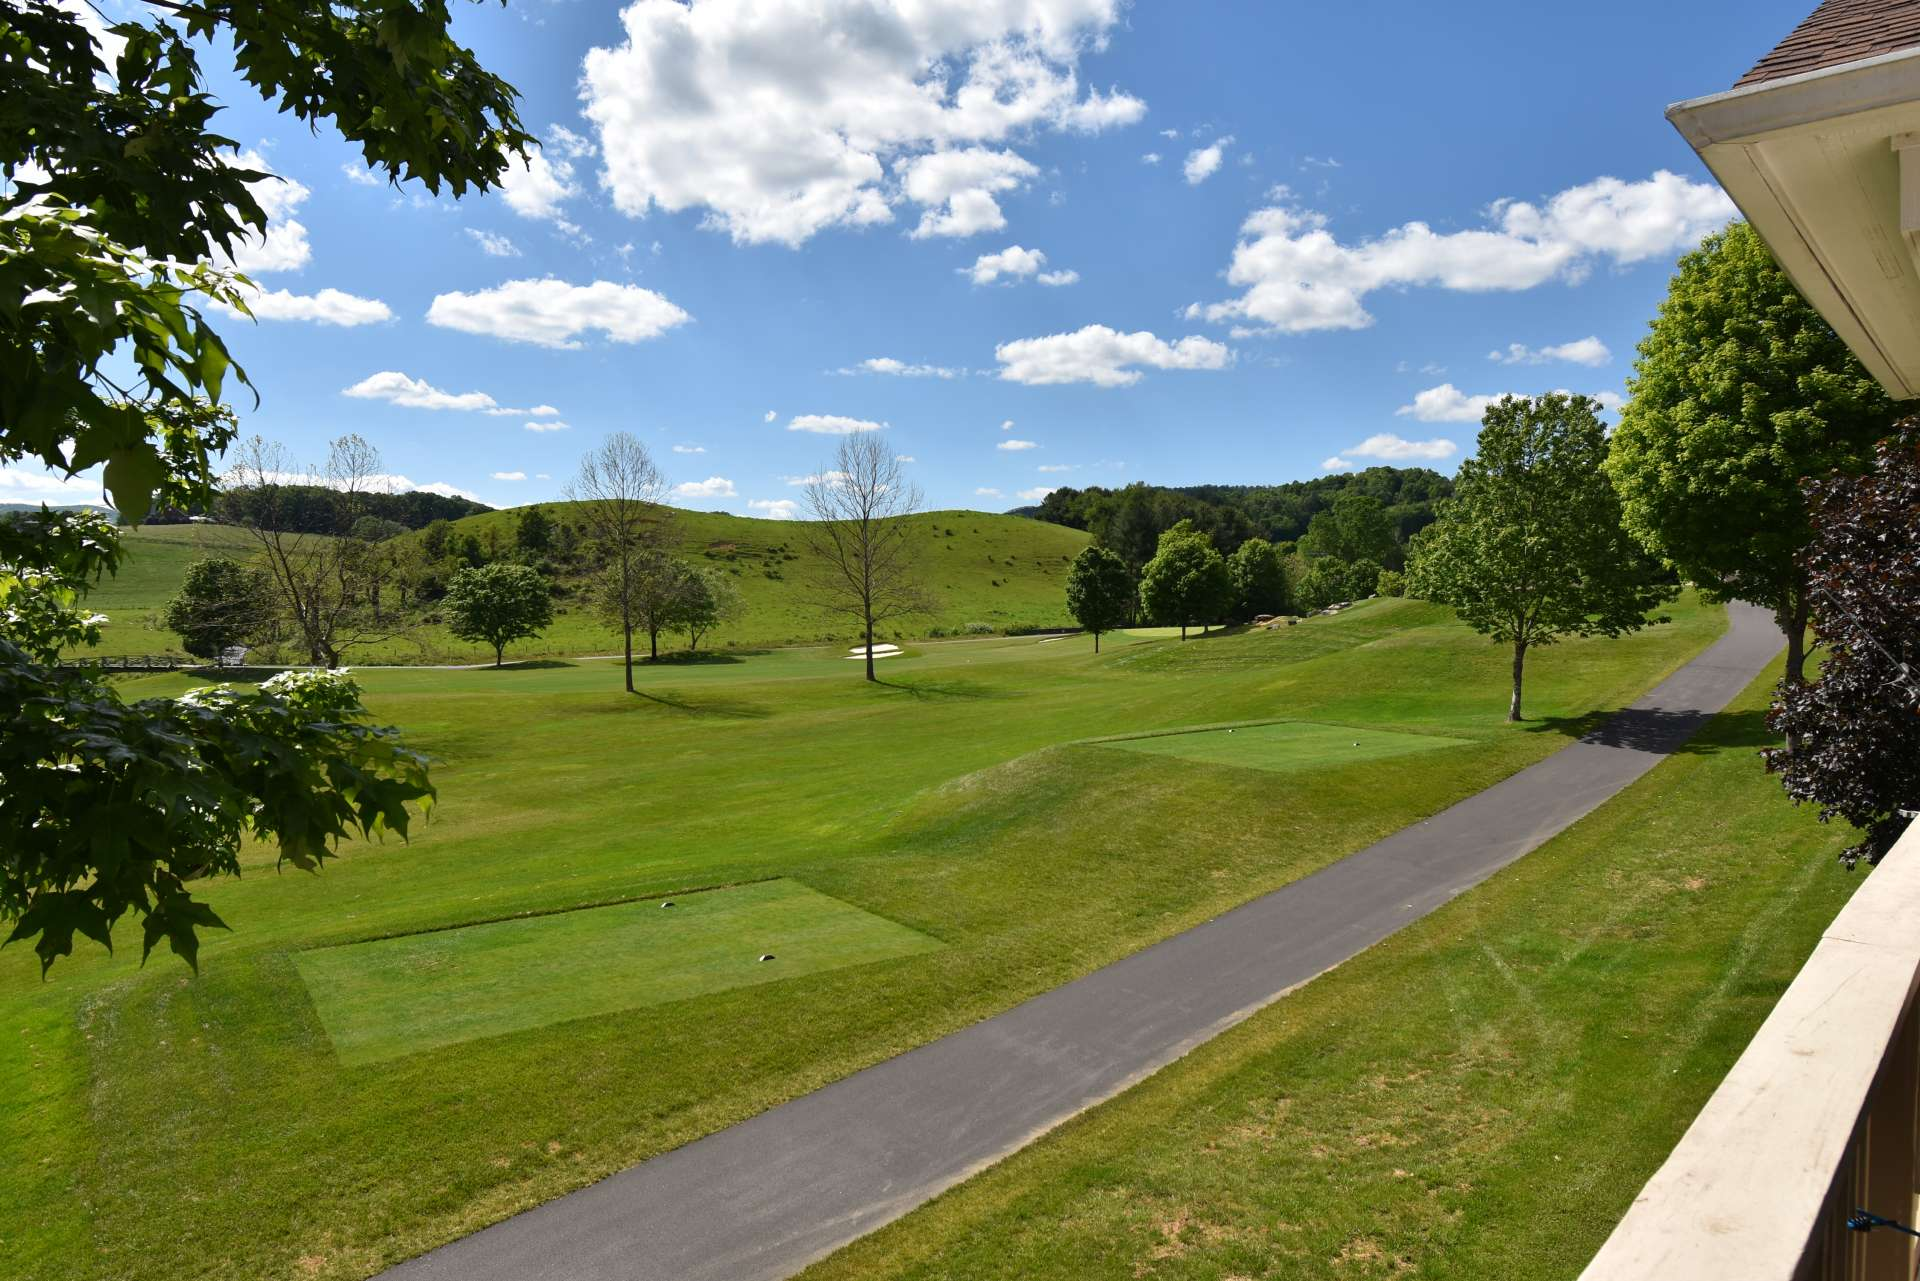 You will enjoy golf course living along with beautiful fairway views with Mount Jefferson towering in the background.